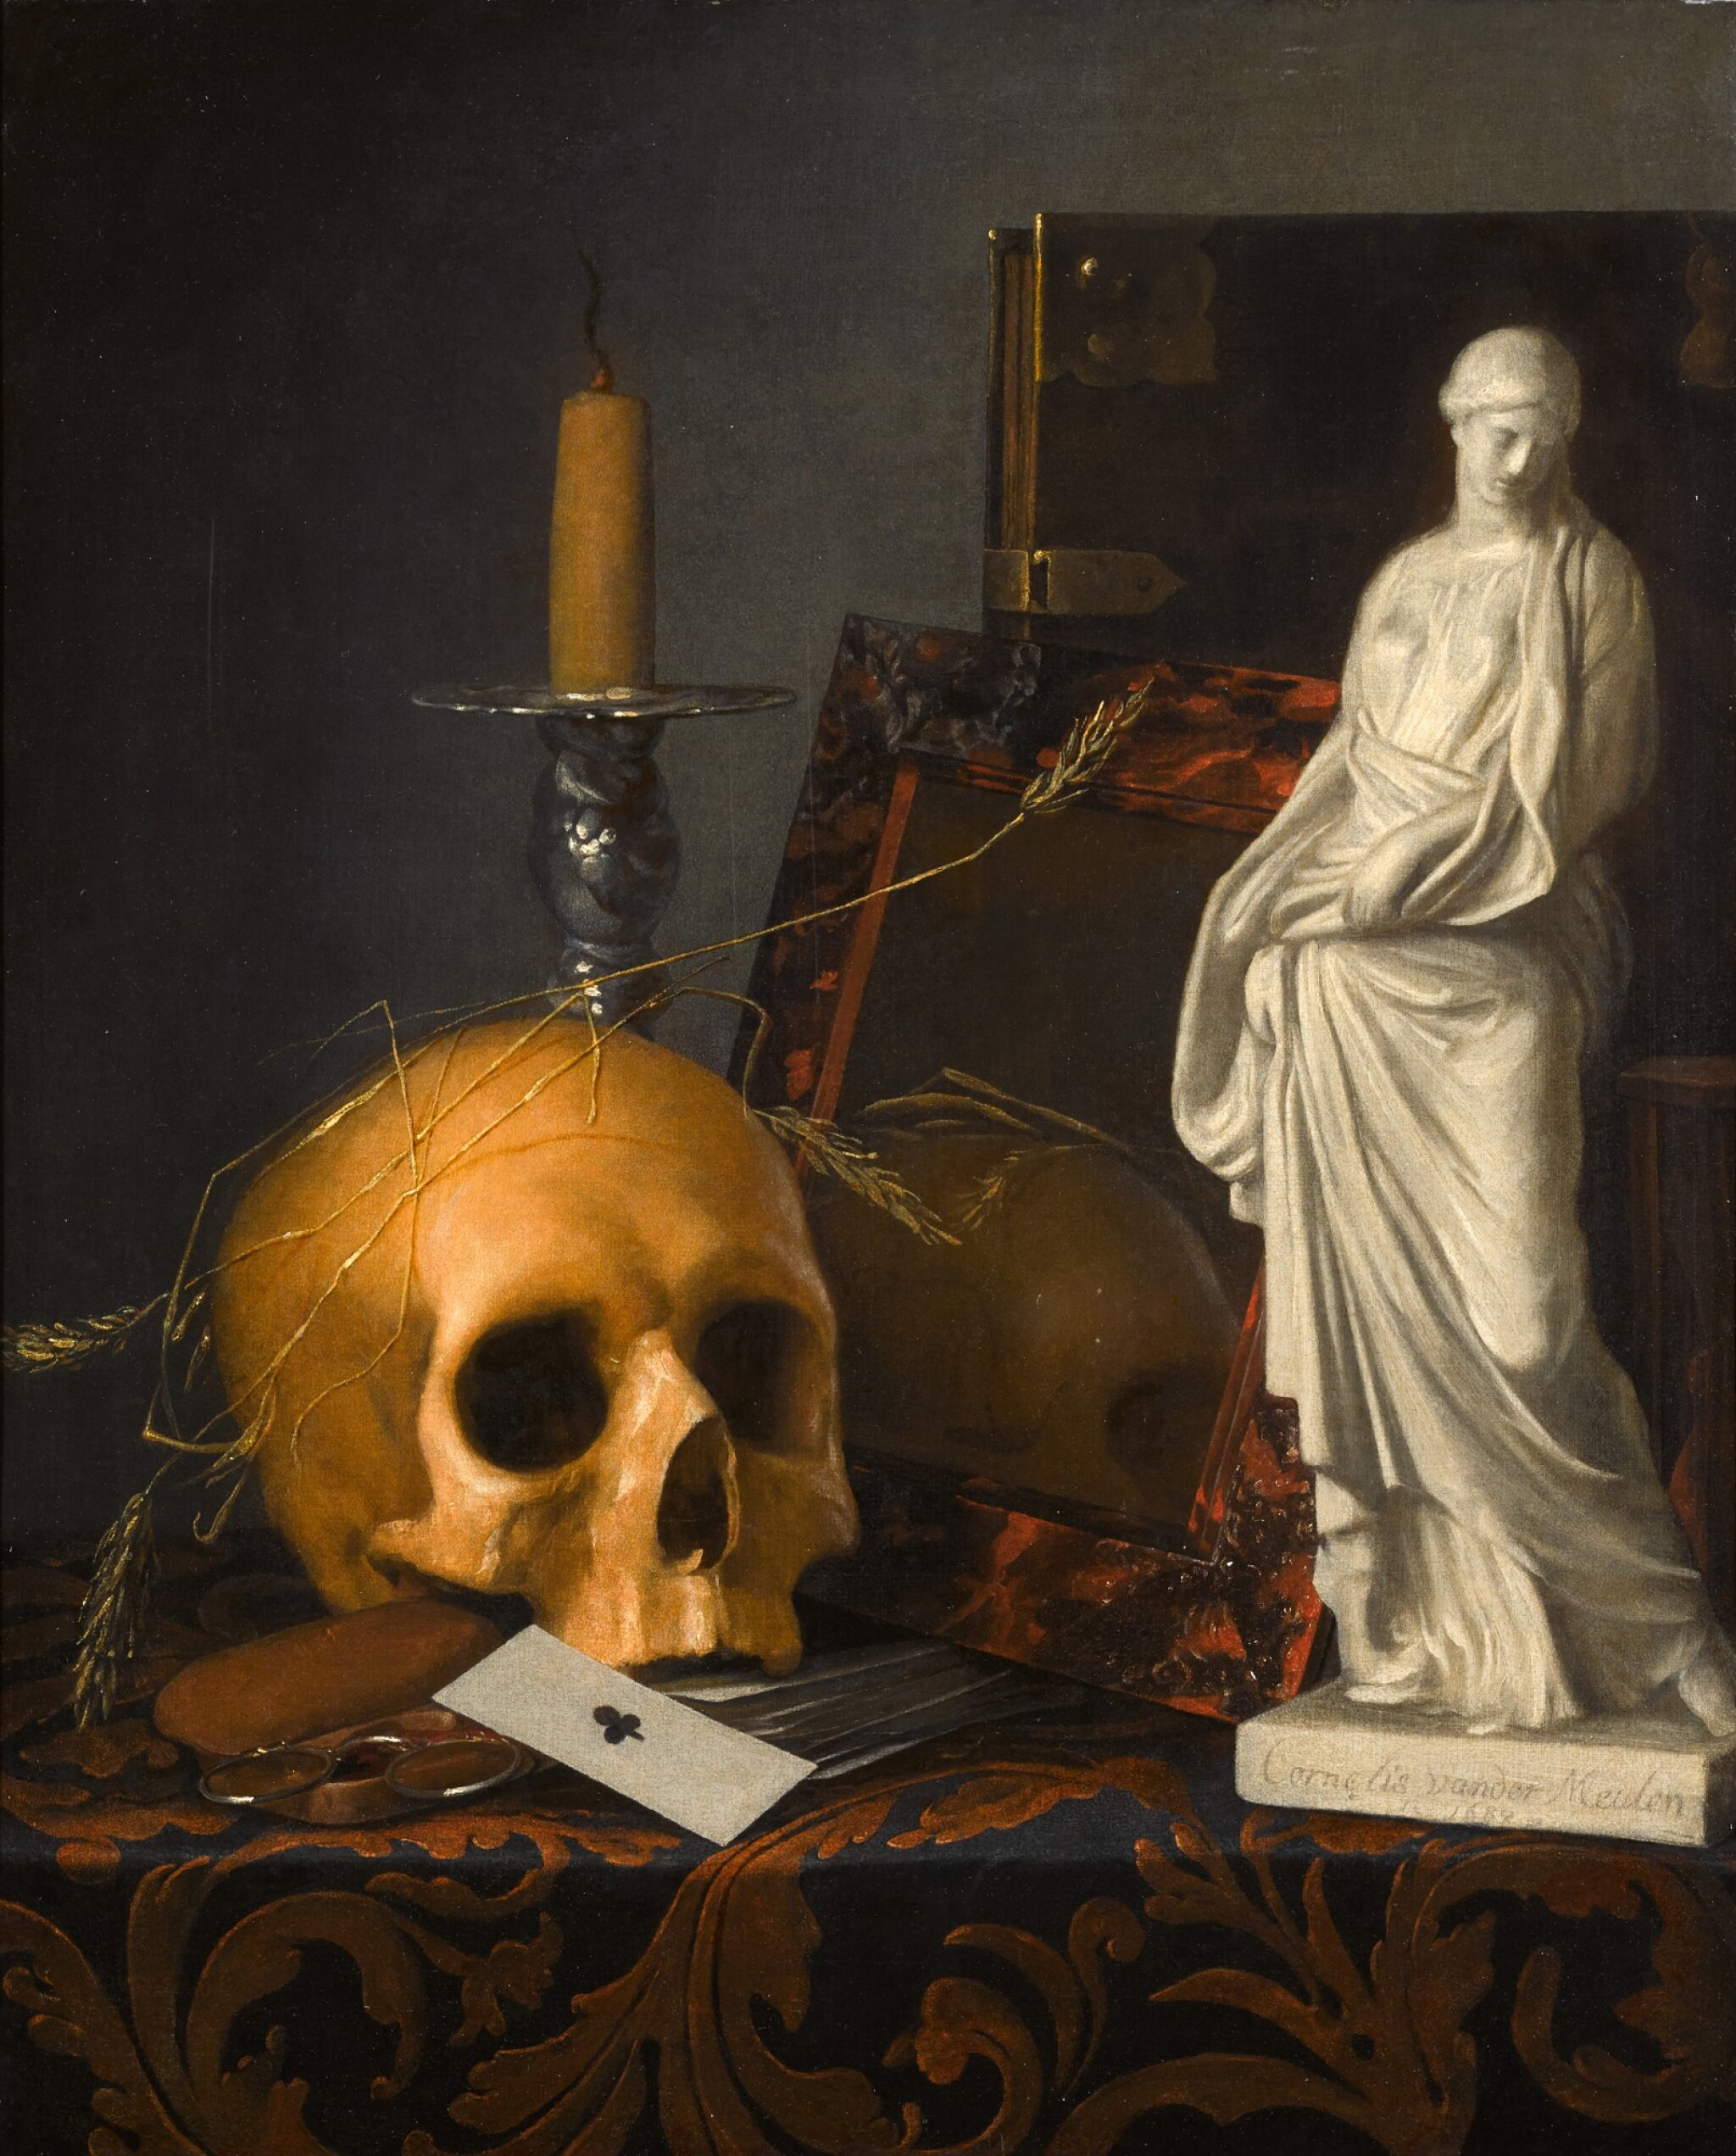 View full screen - View 1 of Lot 287. CORNELIS VAN DER MEULEN | VANITAS STILL LIFE WITH A SKULL, A GUTTERING CANDLE, A TORTOISESHELL MIRROR, A BOOK, A STATUETTE OF SAINT SUSANNA, AND A PACK OF CARDS.